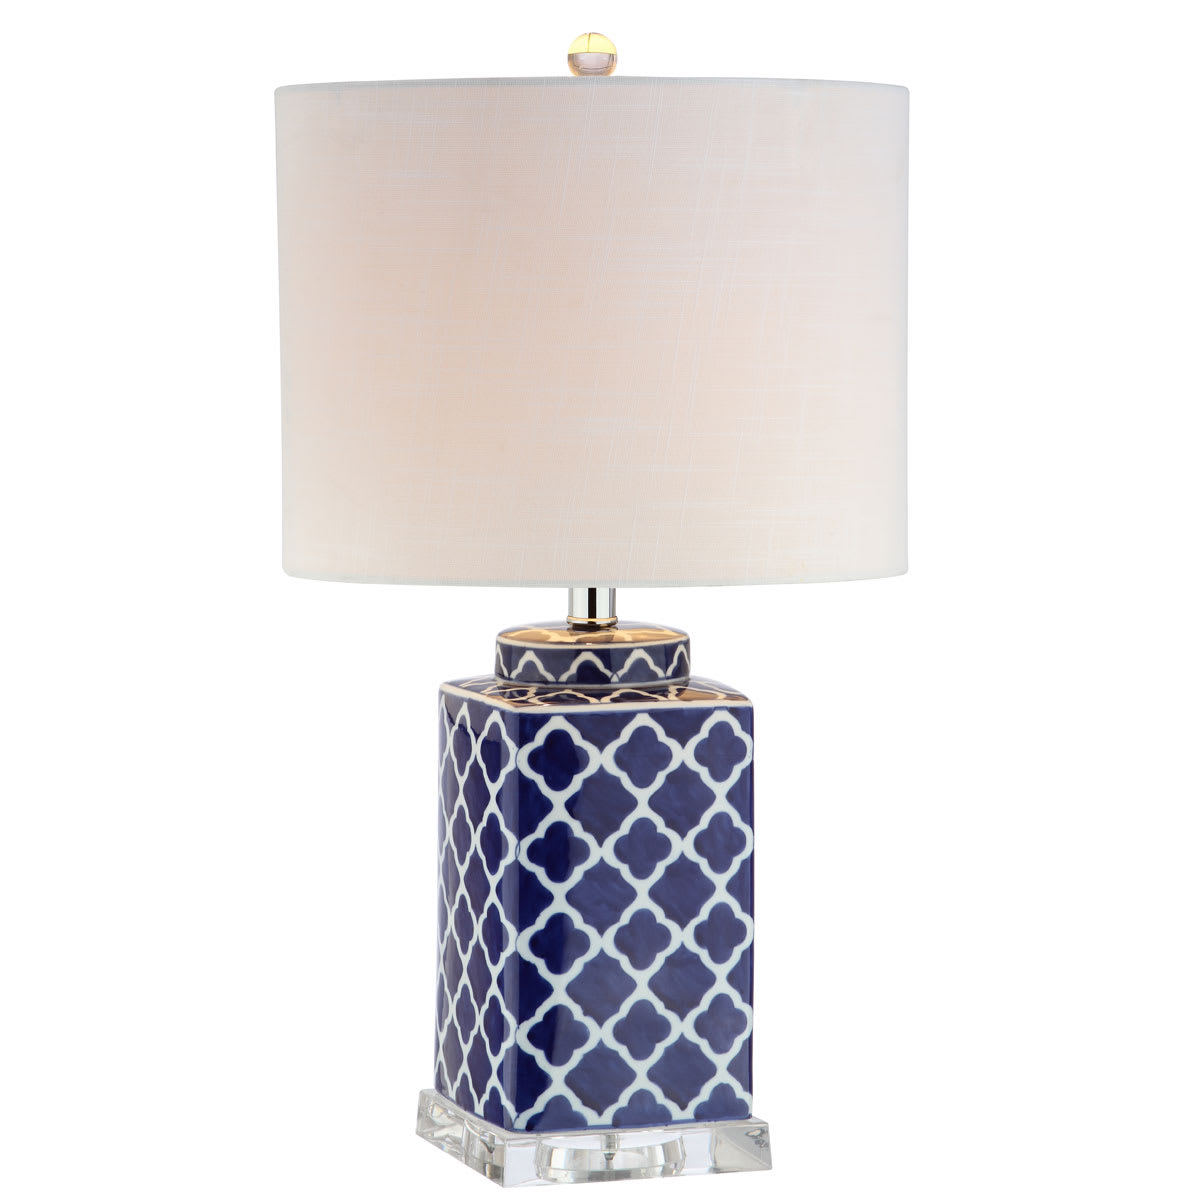 Picture of: Jonathan Y Lighting Jyl3011a Blue White Moroccan Style Led Table Lamp With Quatrefoil Design Lightingdirect Com